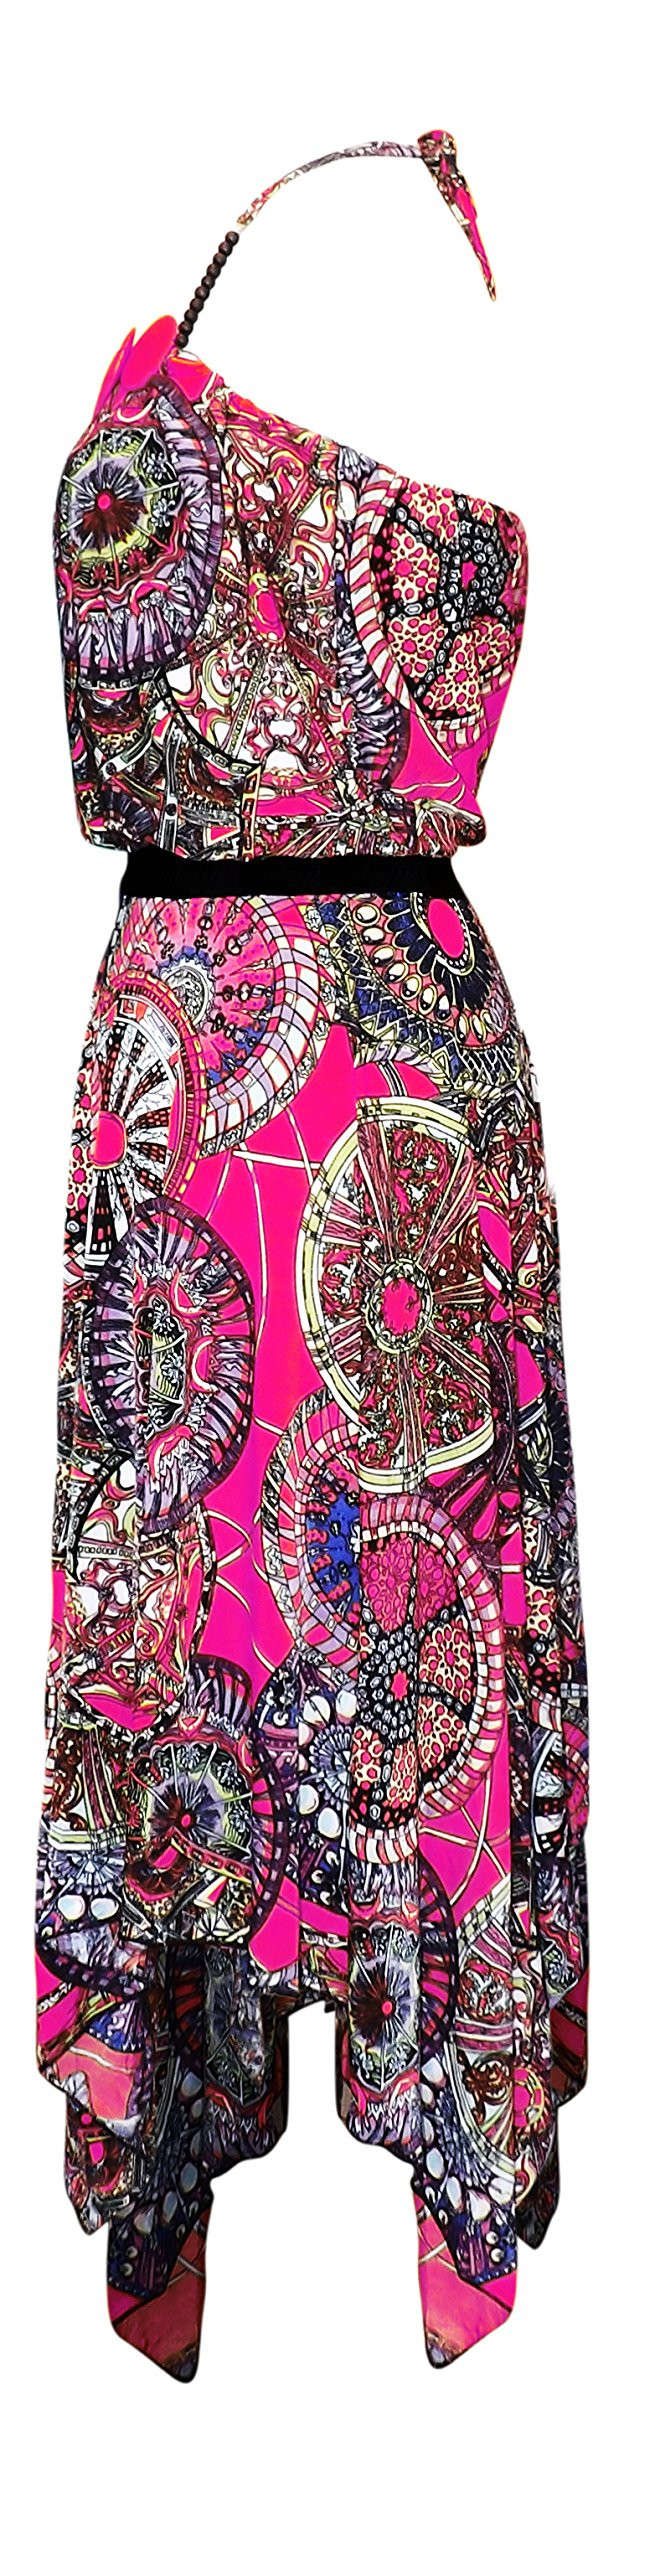 Women's Handkerchief Multicolor Loose Fit Top Boho Dress